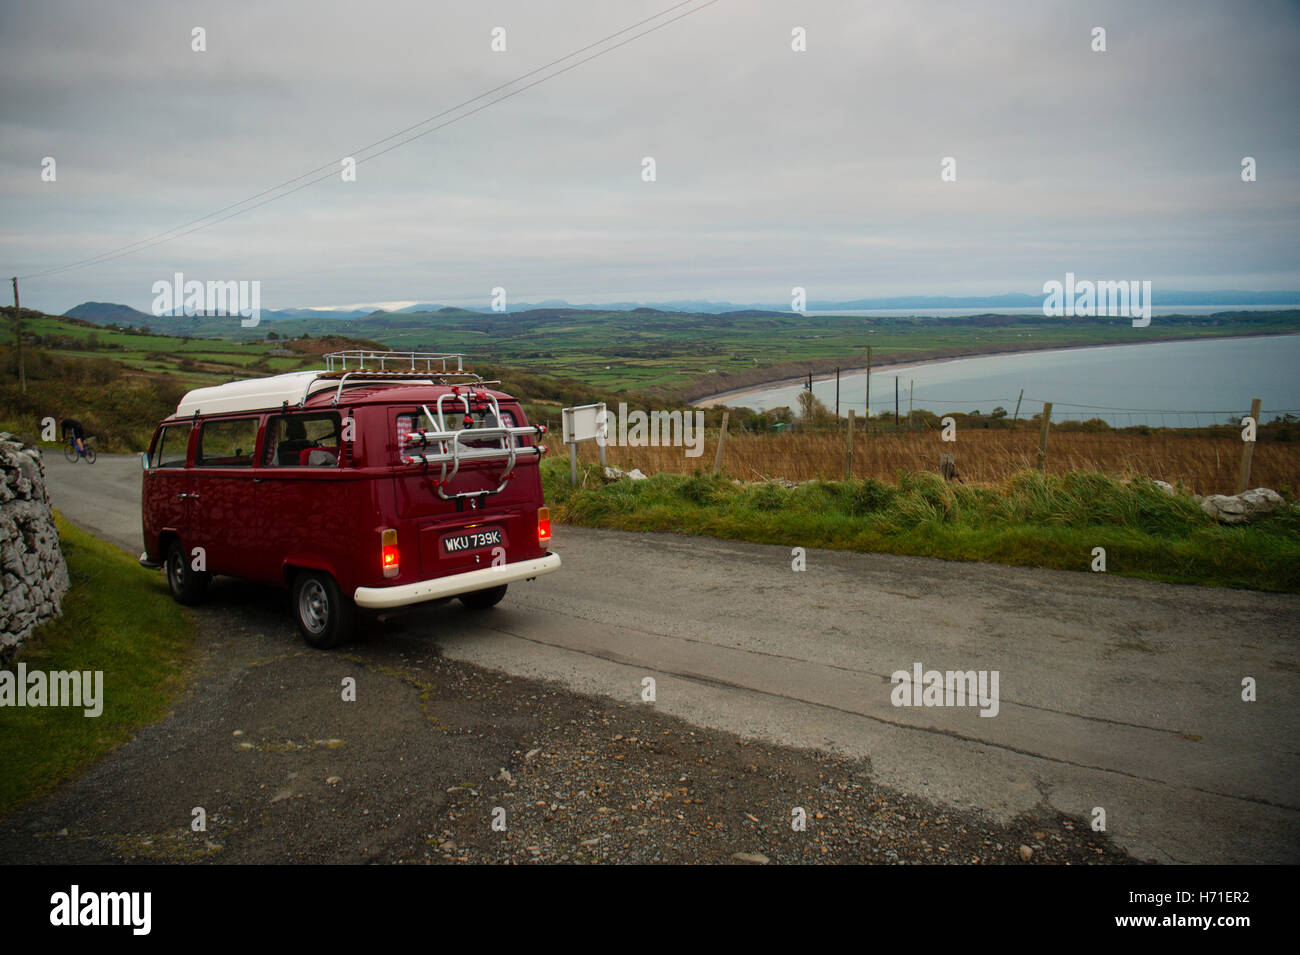 Vacations in north Wales: A classic VW volkswagen T2 campervan on a narrow country lane overlooking Hells Mouth - Stock Image